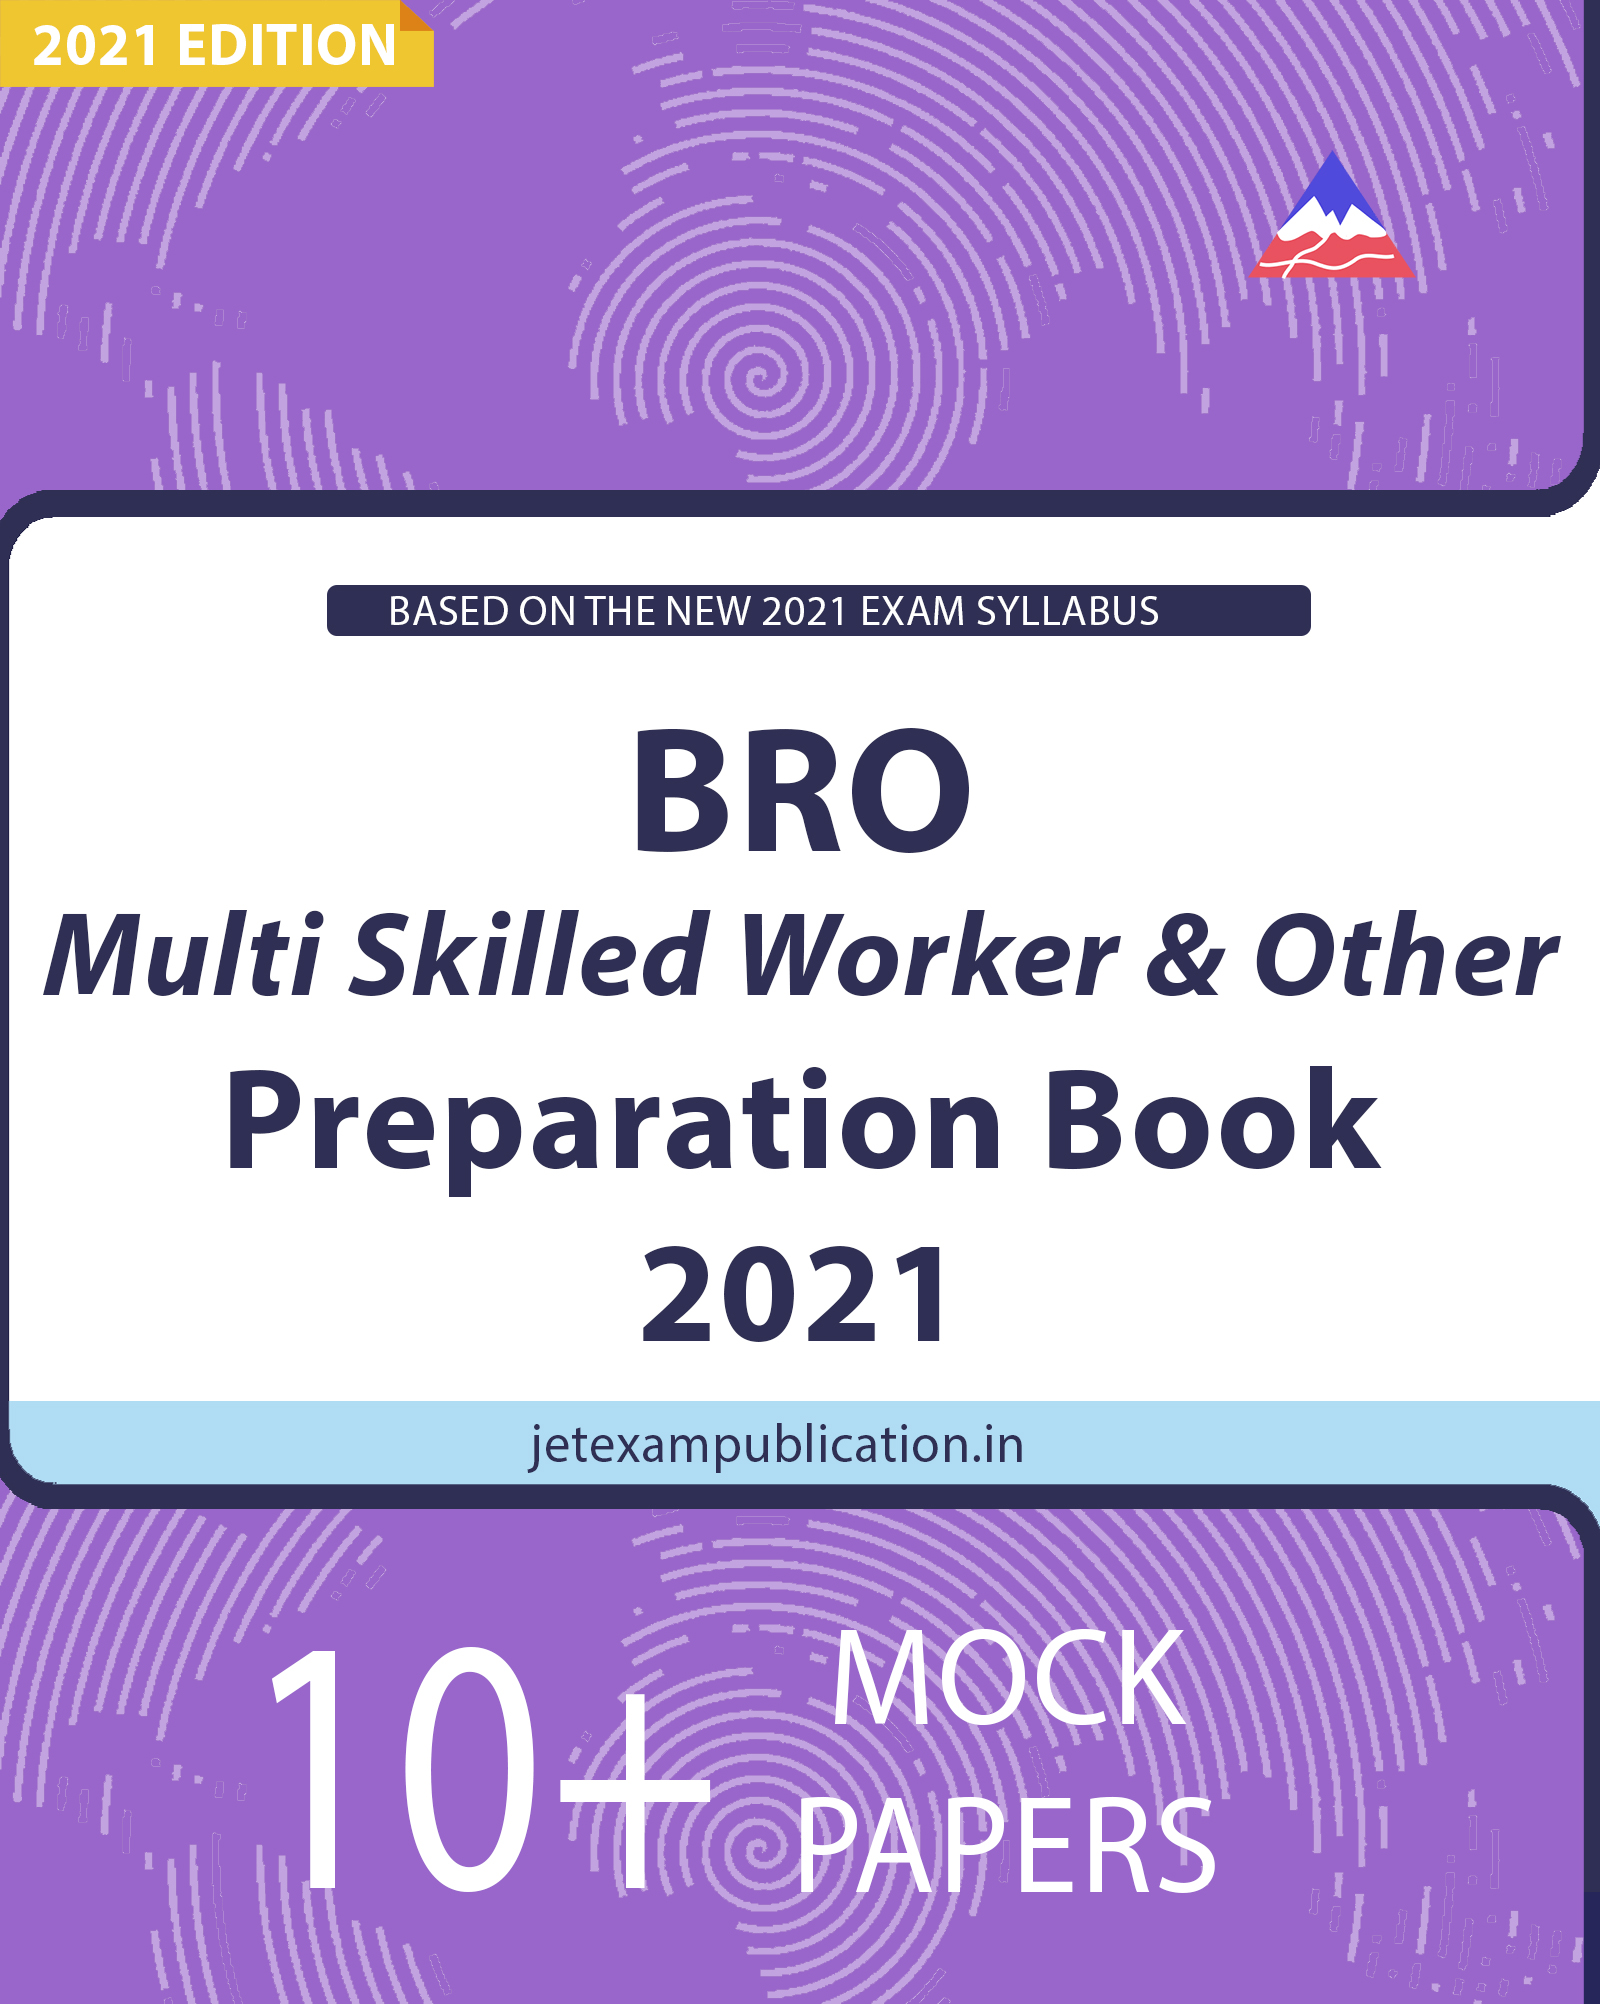 BRO Multi Skilled Worker & Other Preparation Book 2021